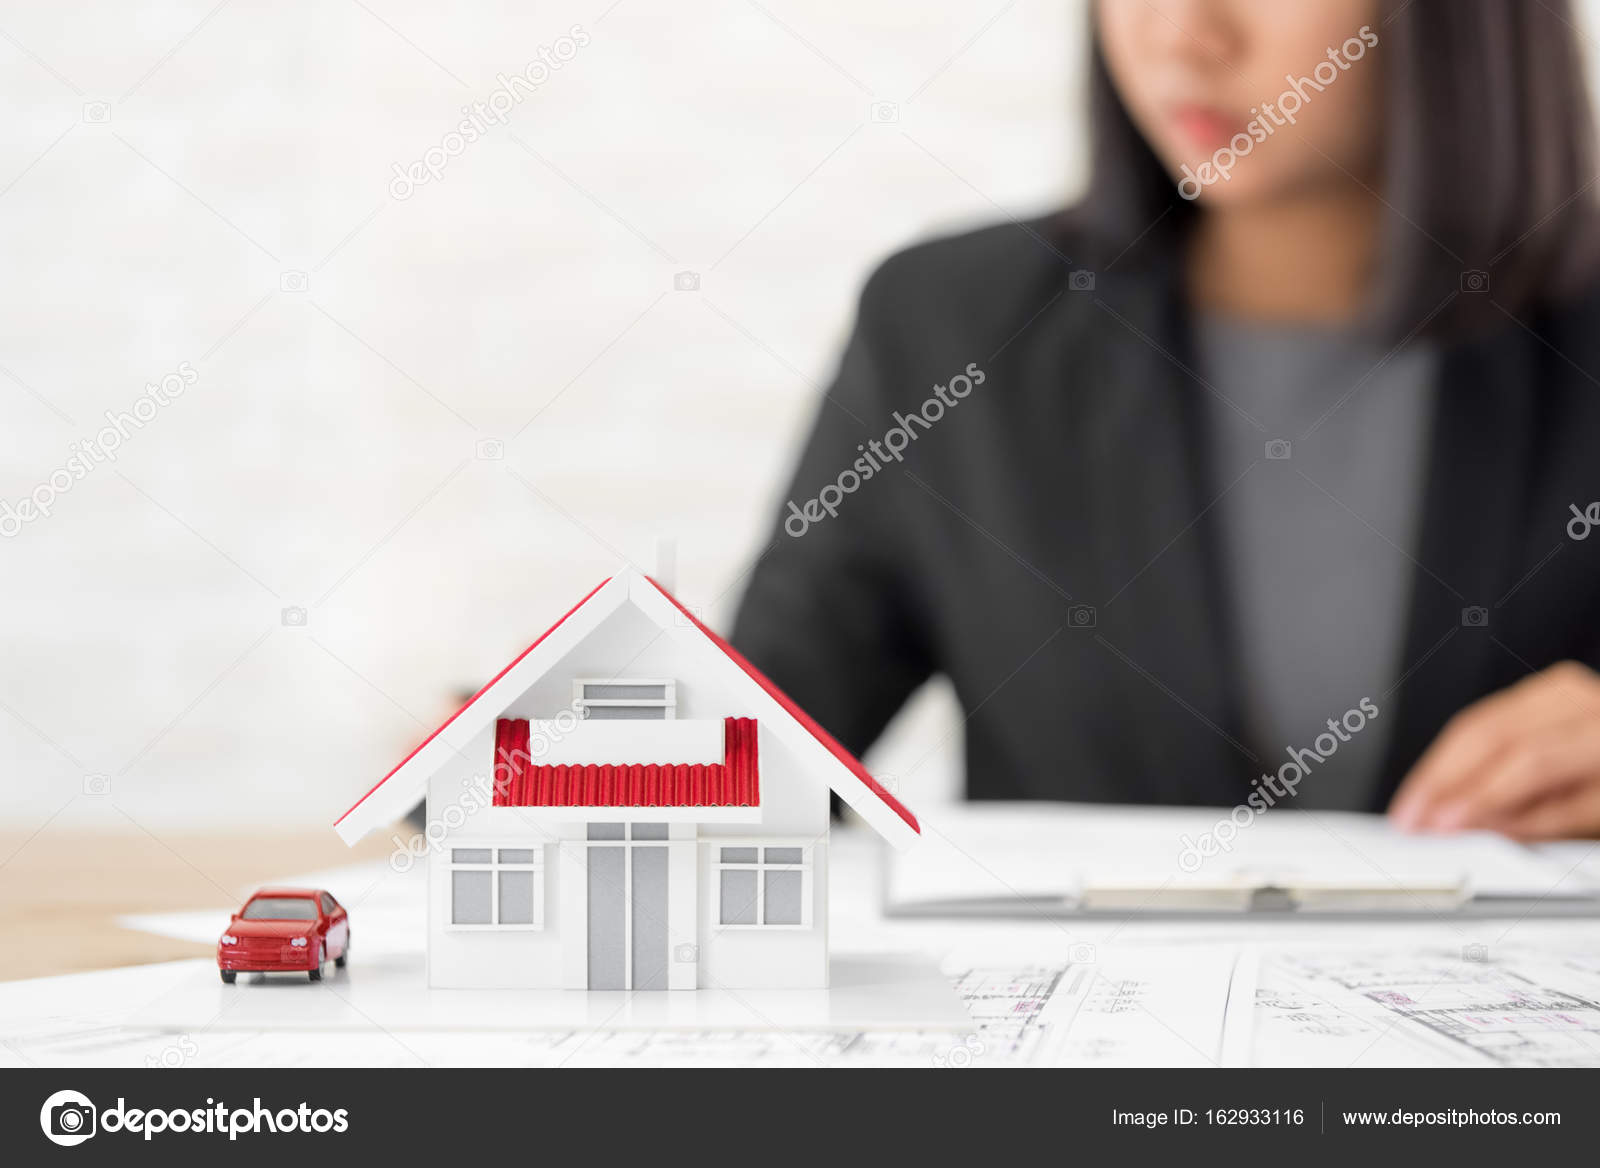 House model on blueprint paper at the table with blurred busines house model on blueprint paper at the table with blurred businesswoman in background real estate and property agent concept photo by kritchanut malvernweather